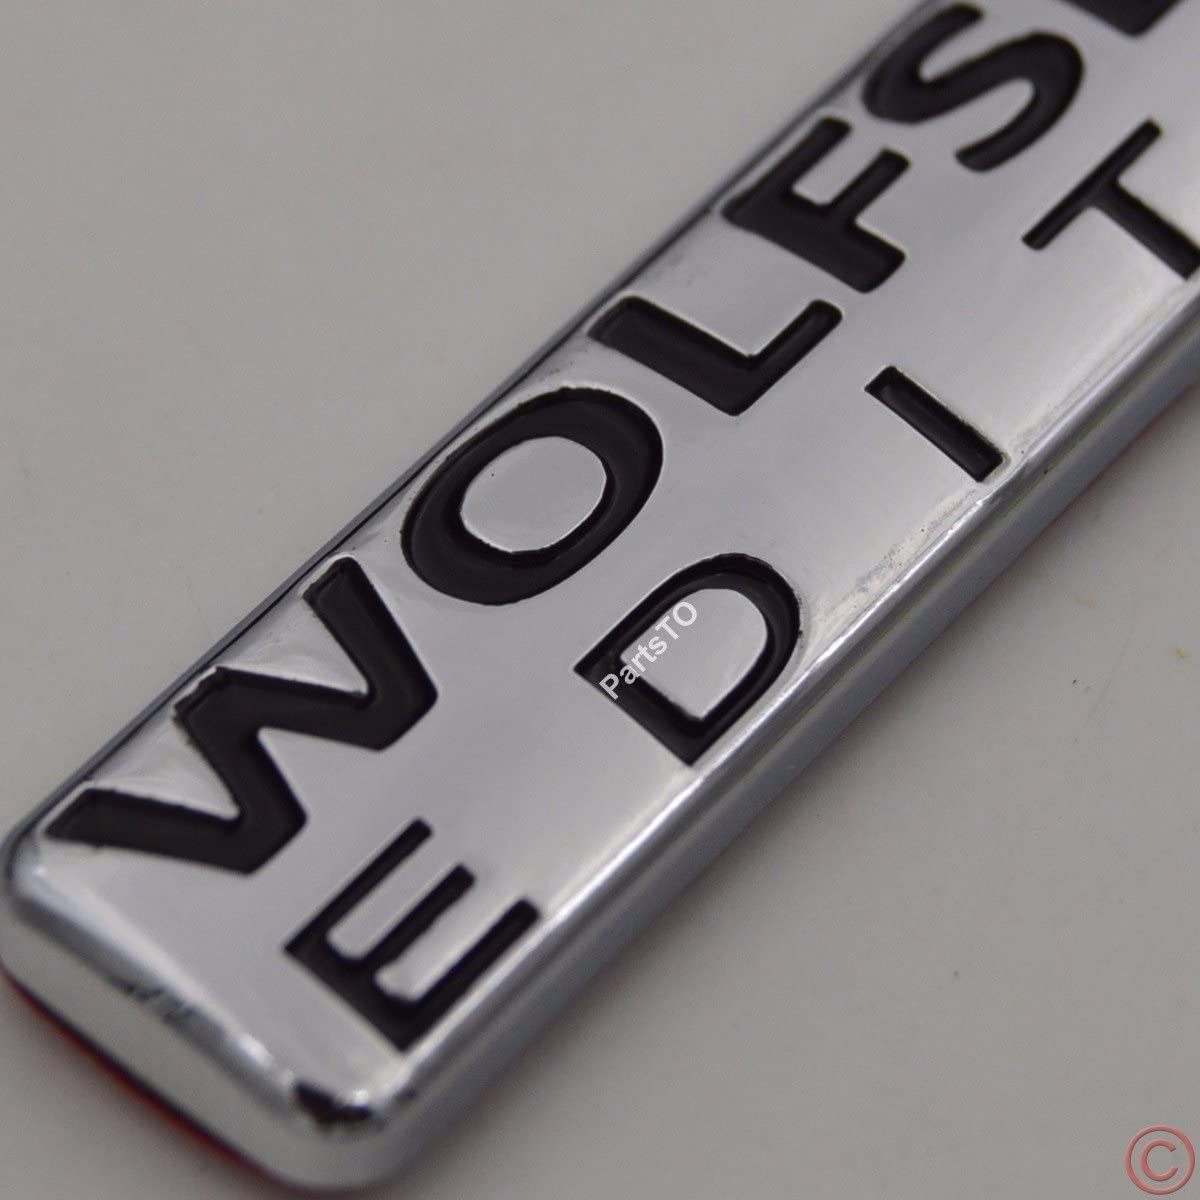 2x Wolfsburg Edition Emblem Badge Plate Trim Decal for Fender side trunk inner front window